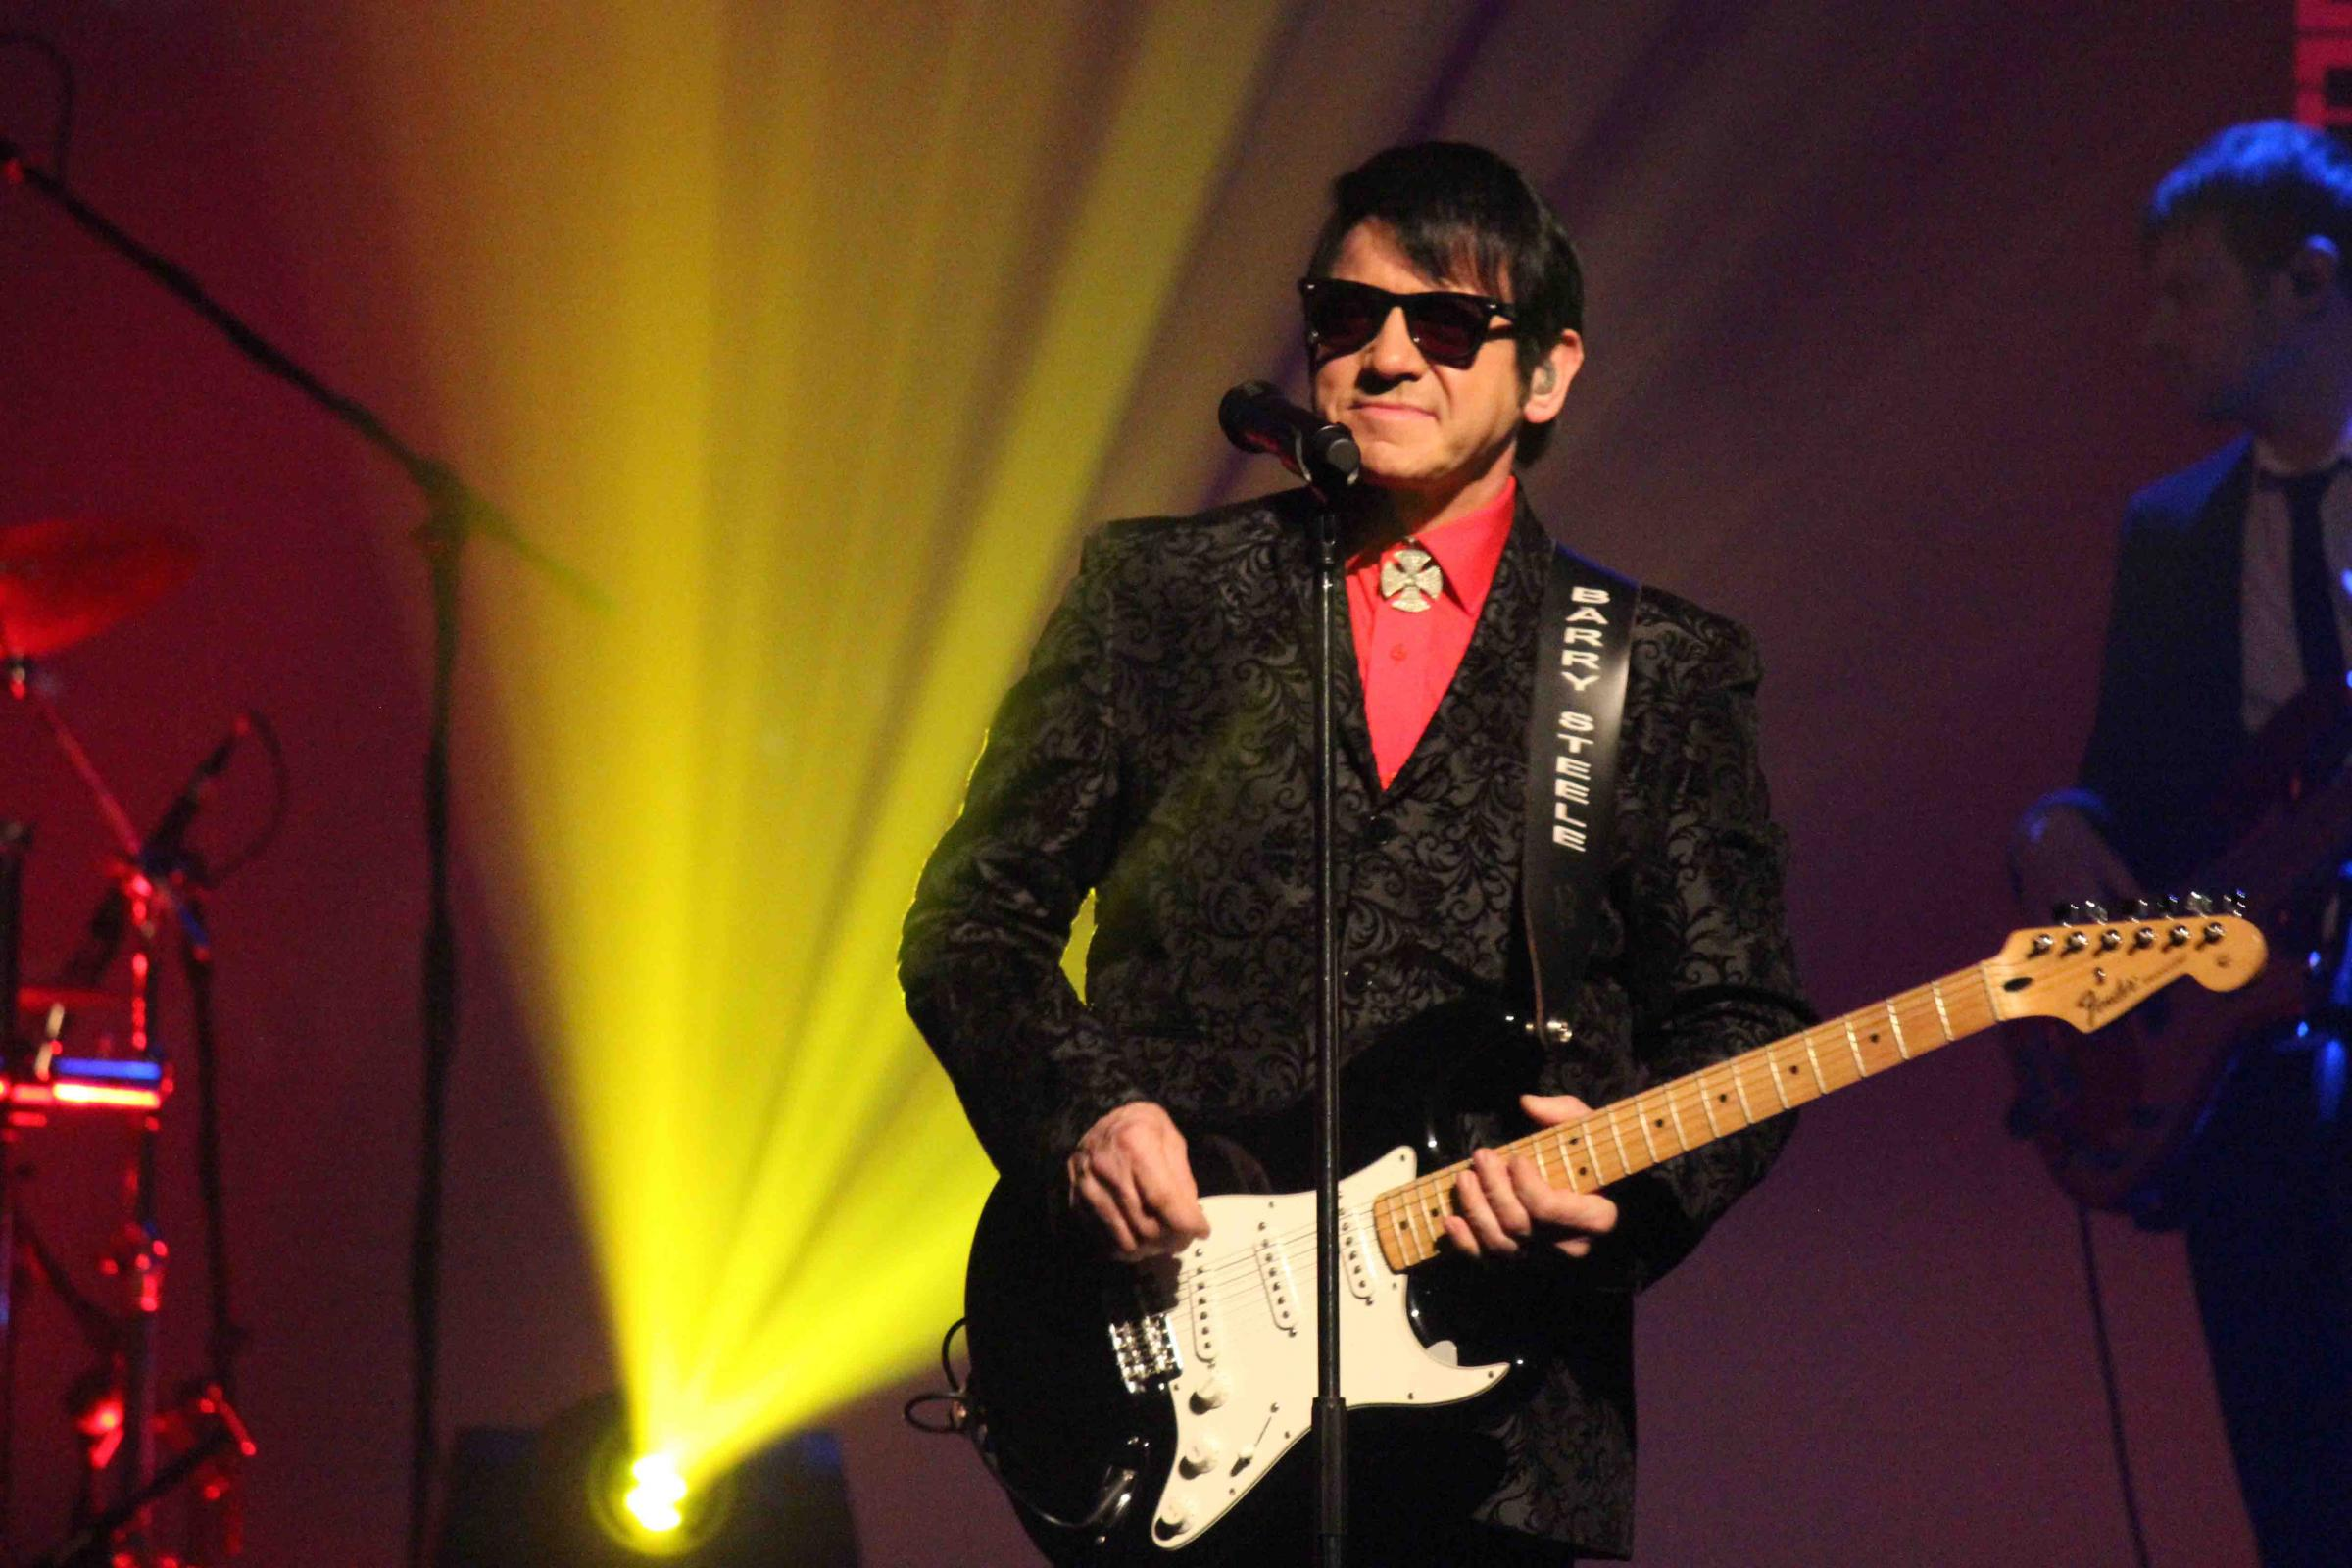 The Roy Orbison Story featuring Barry Steele